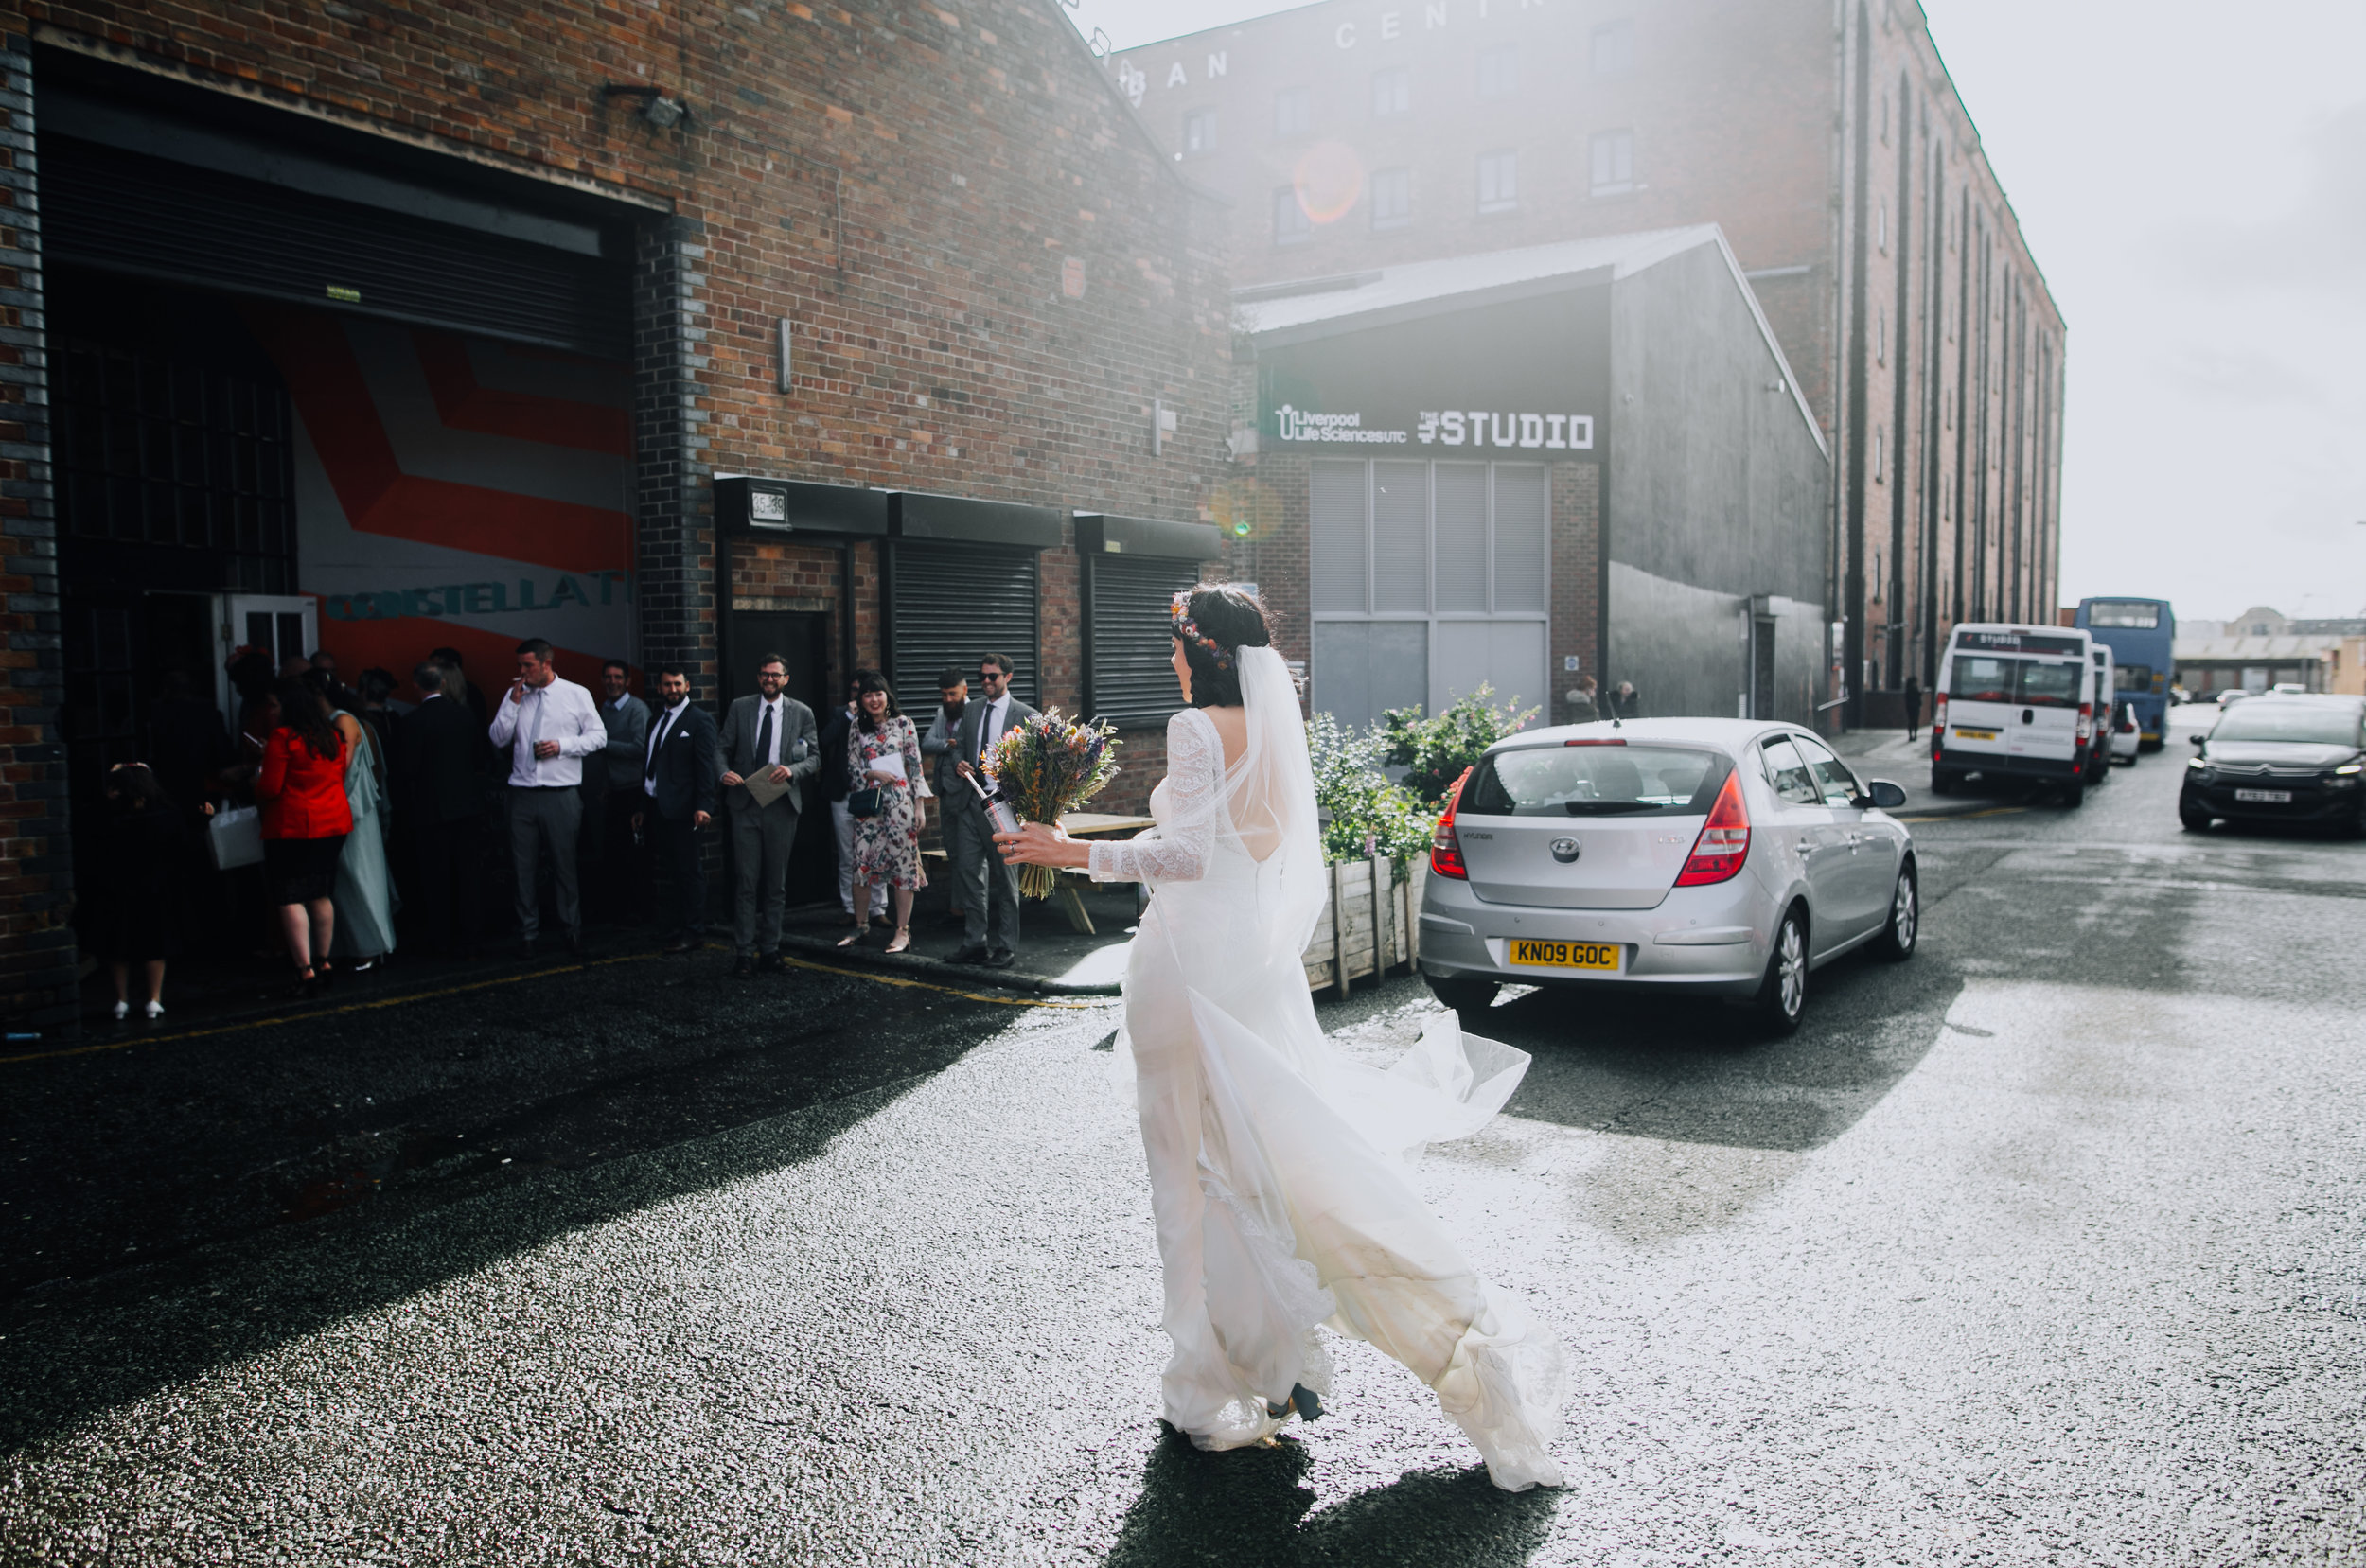 A festival burning man themed wedding at Constellations liverpool